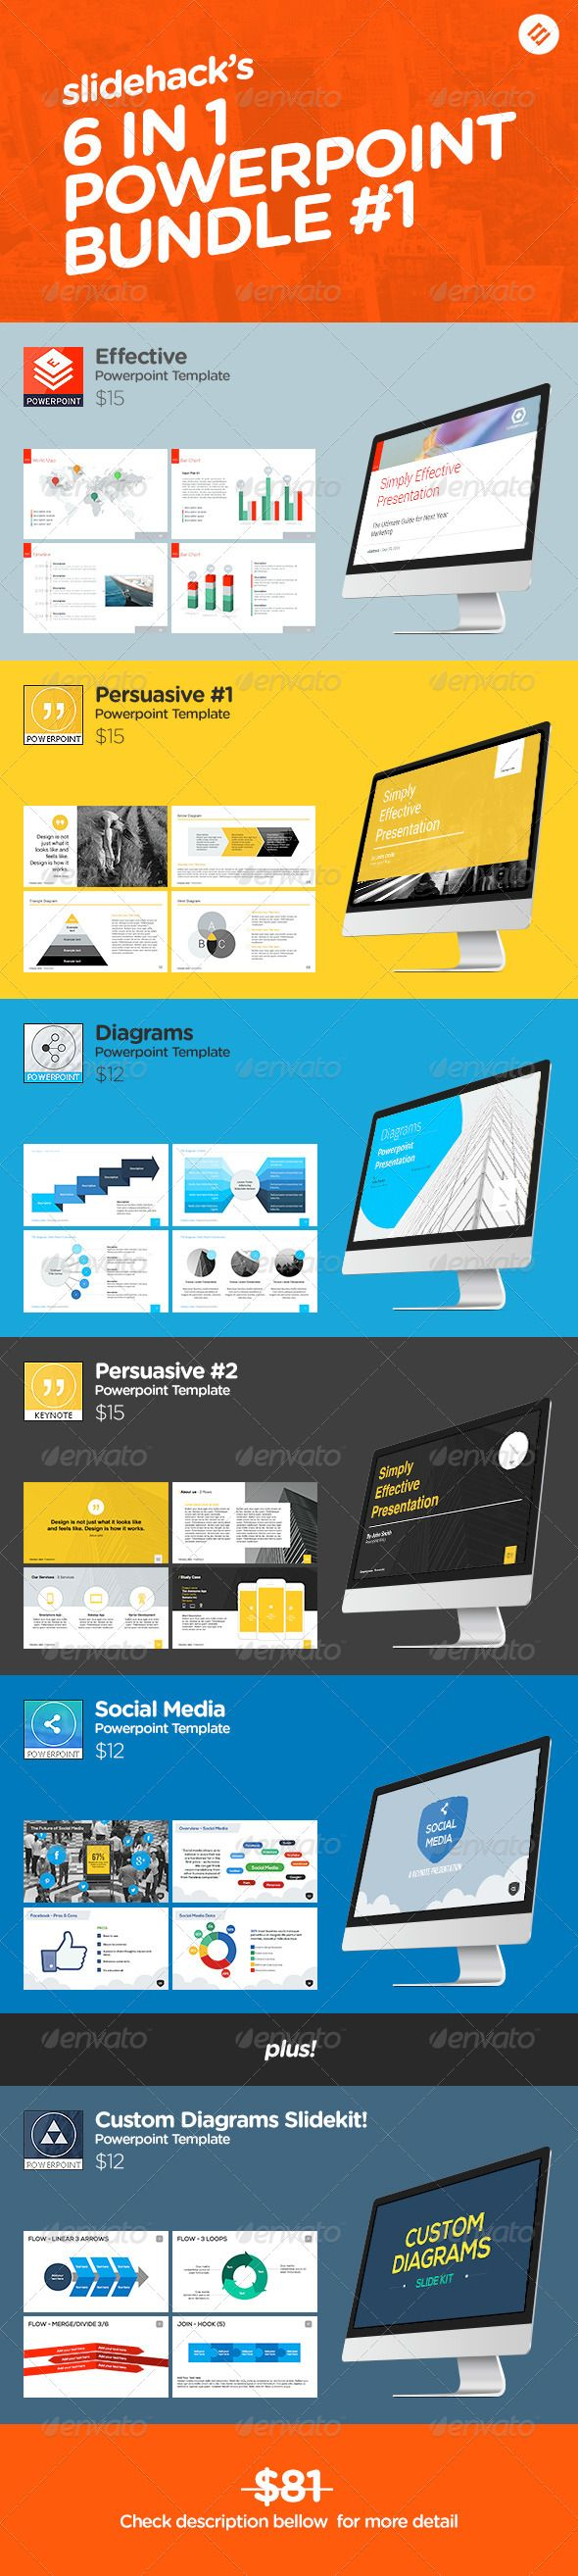 Slidehack's 6 in 1 Powerpoint Bundle - Powerpoint Templates Presentation Templates